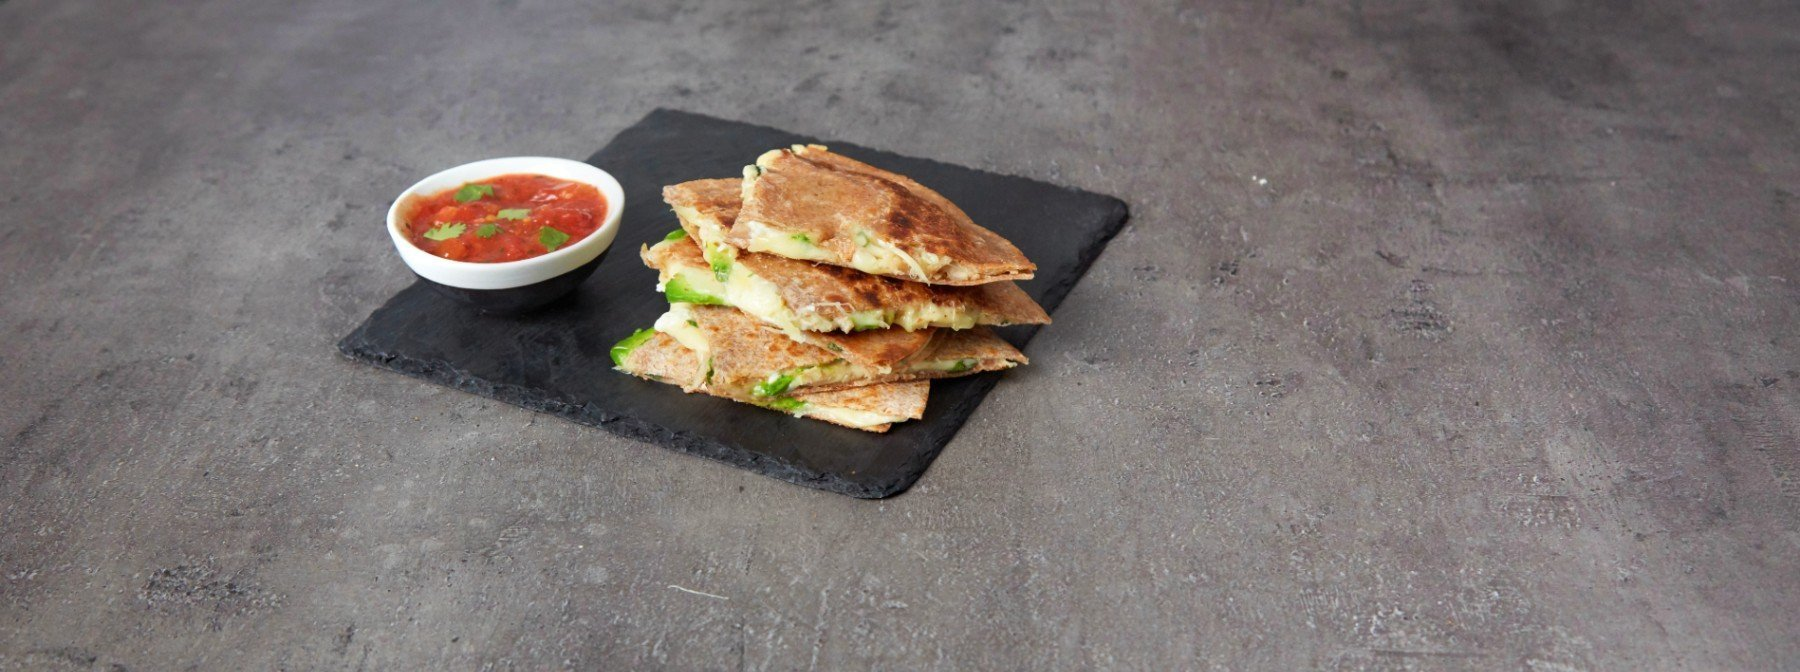 Herzhafte Puten & Avocado Quesadillas